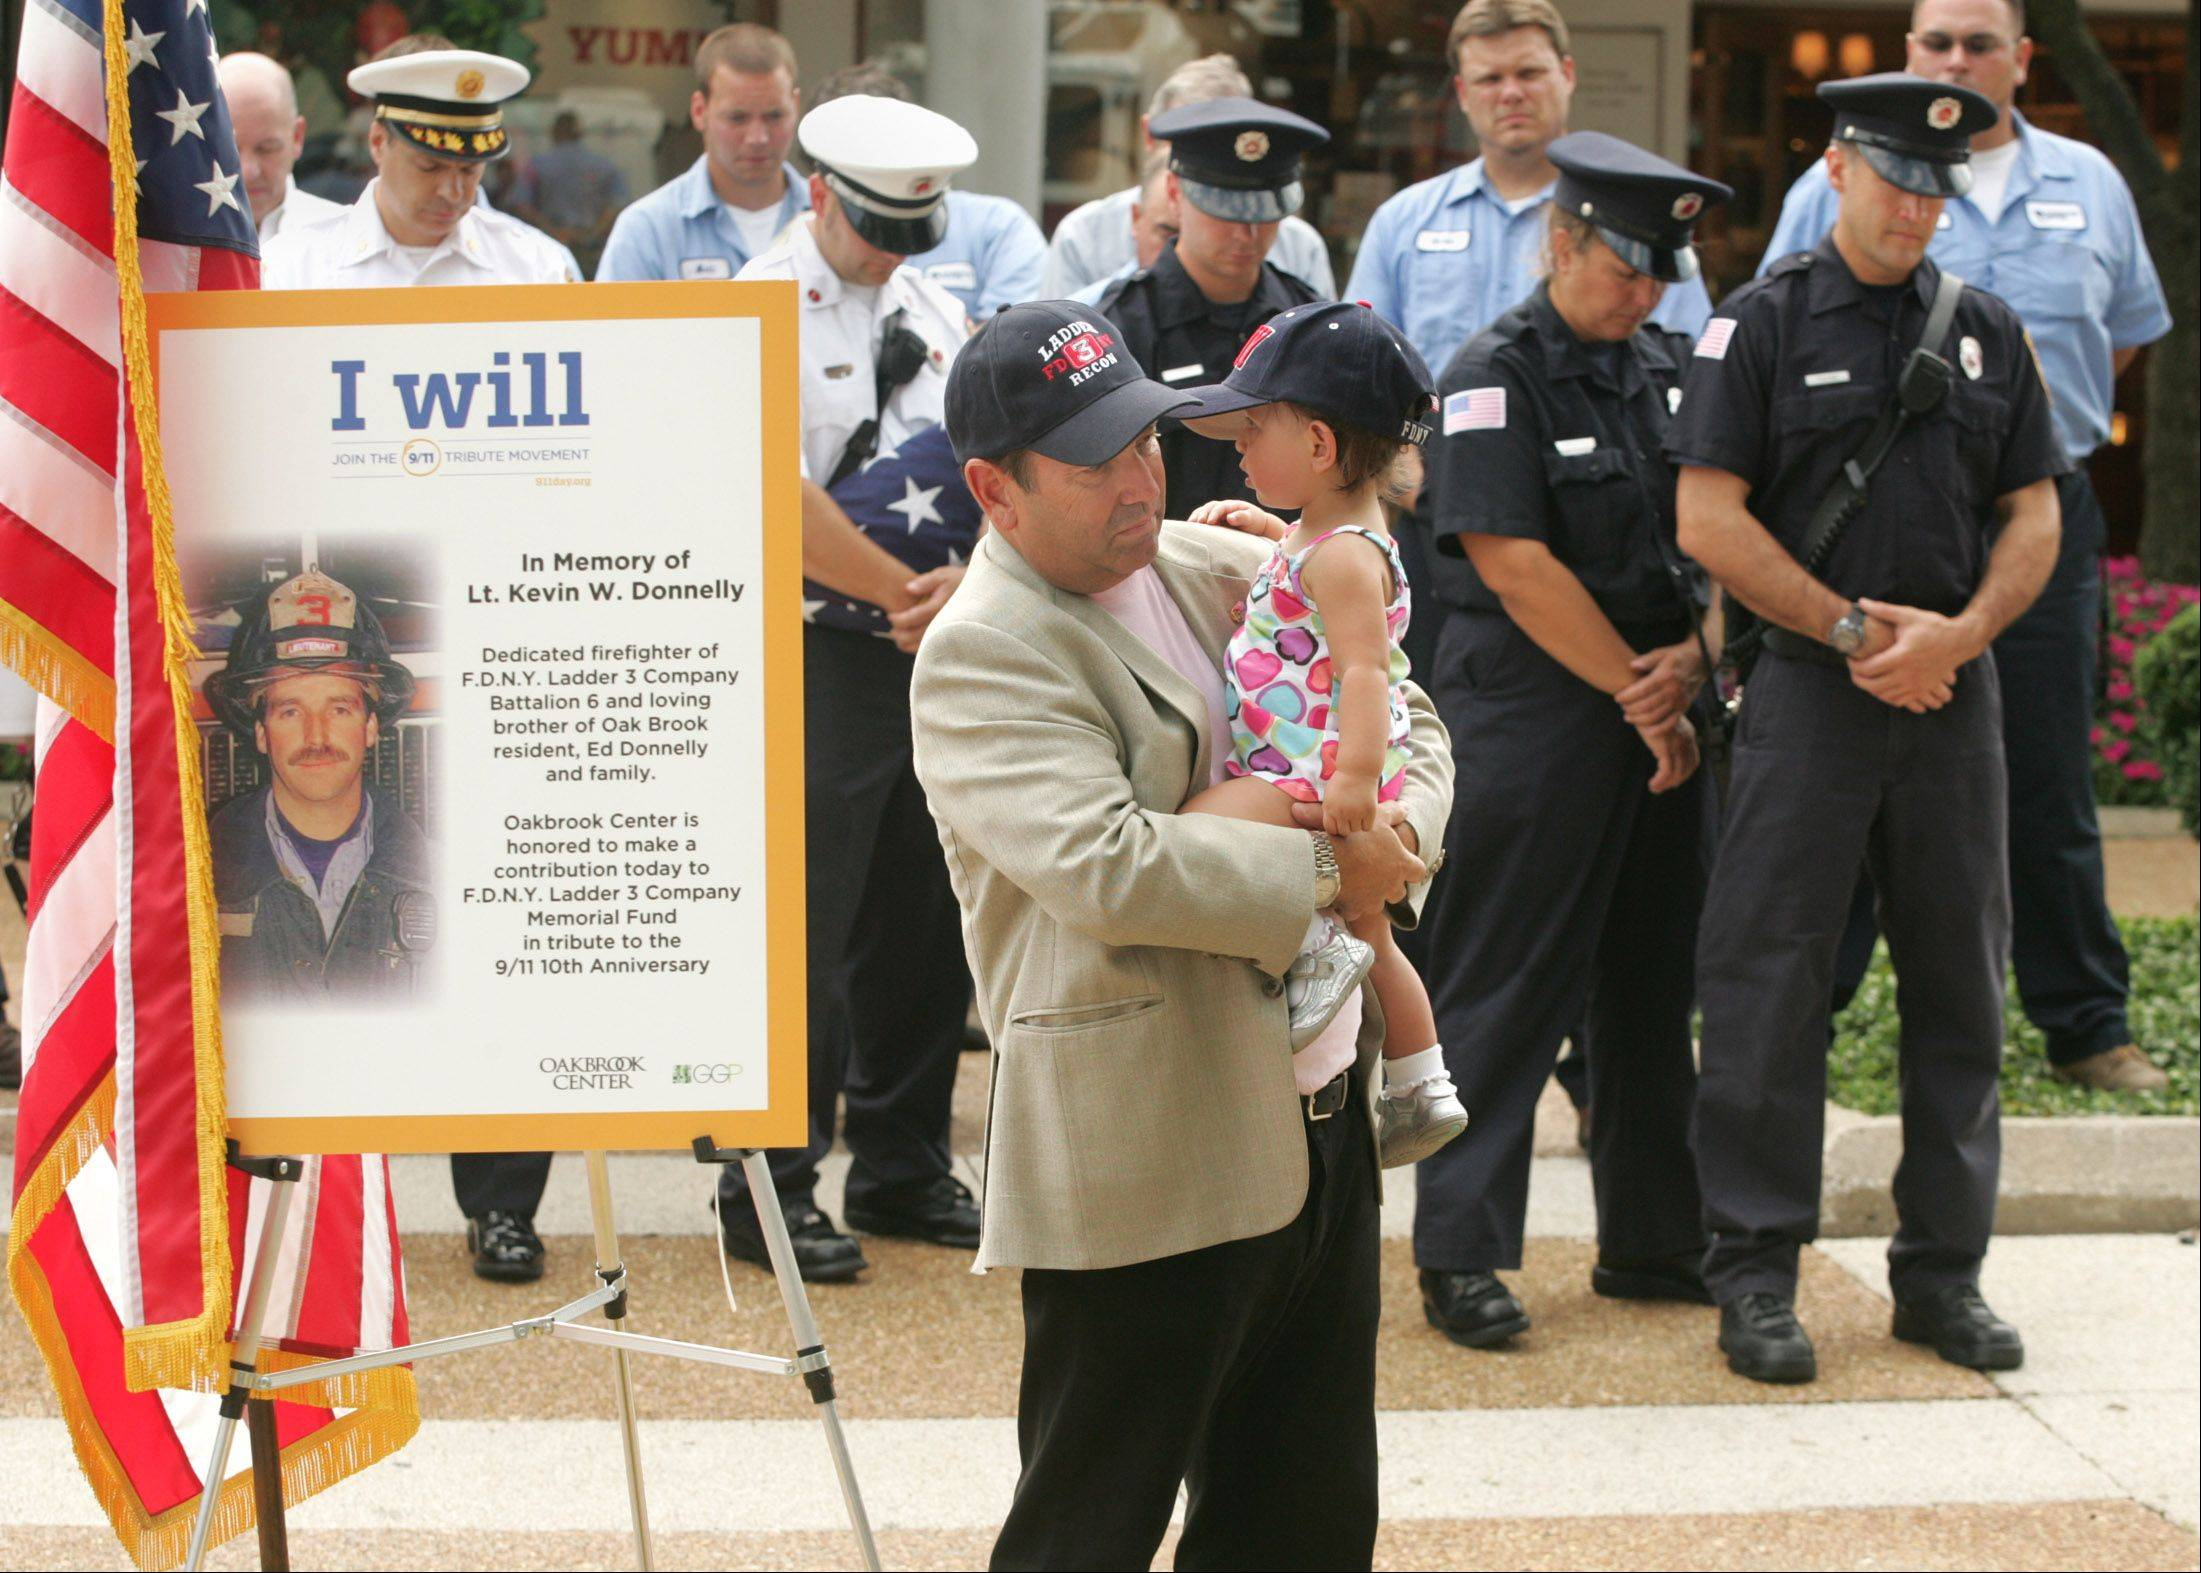 Oak Brook resident Ed Donnelly holds his granddaughter Olivia during a moment of silence Friday for his brother, fire Lt. Kevin W. Donnelly, who was killed in the Sept. 11, 2001, terrorist attacks at the World Trade Center in New York City.